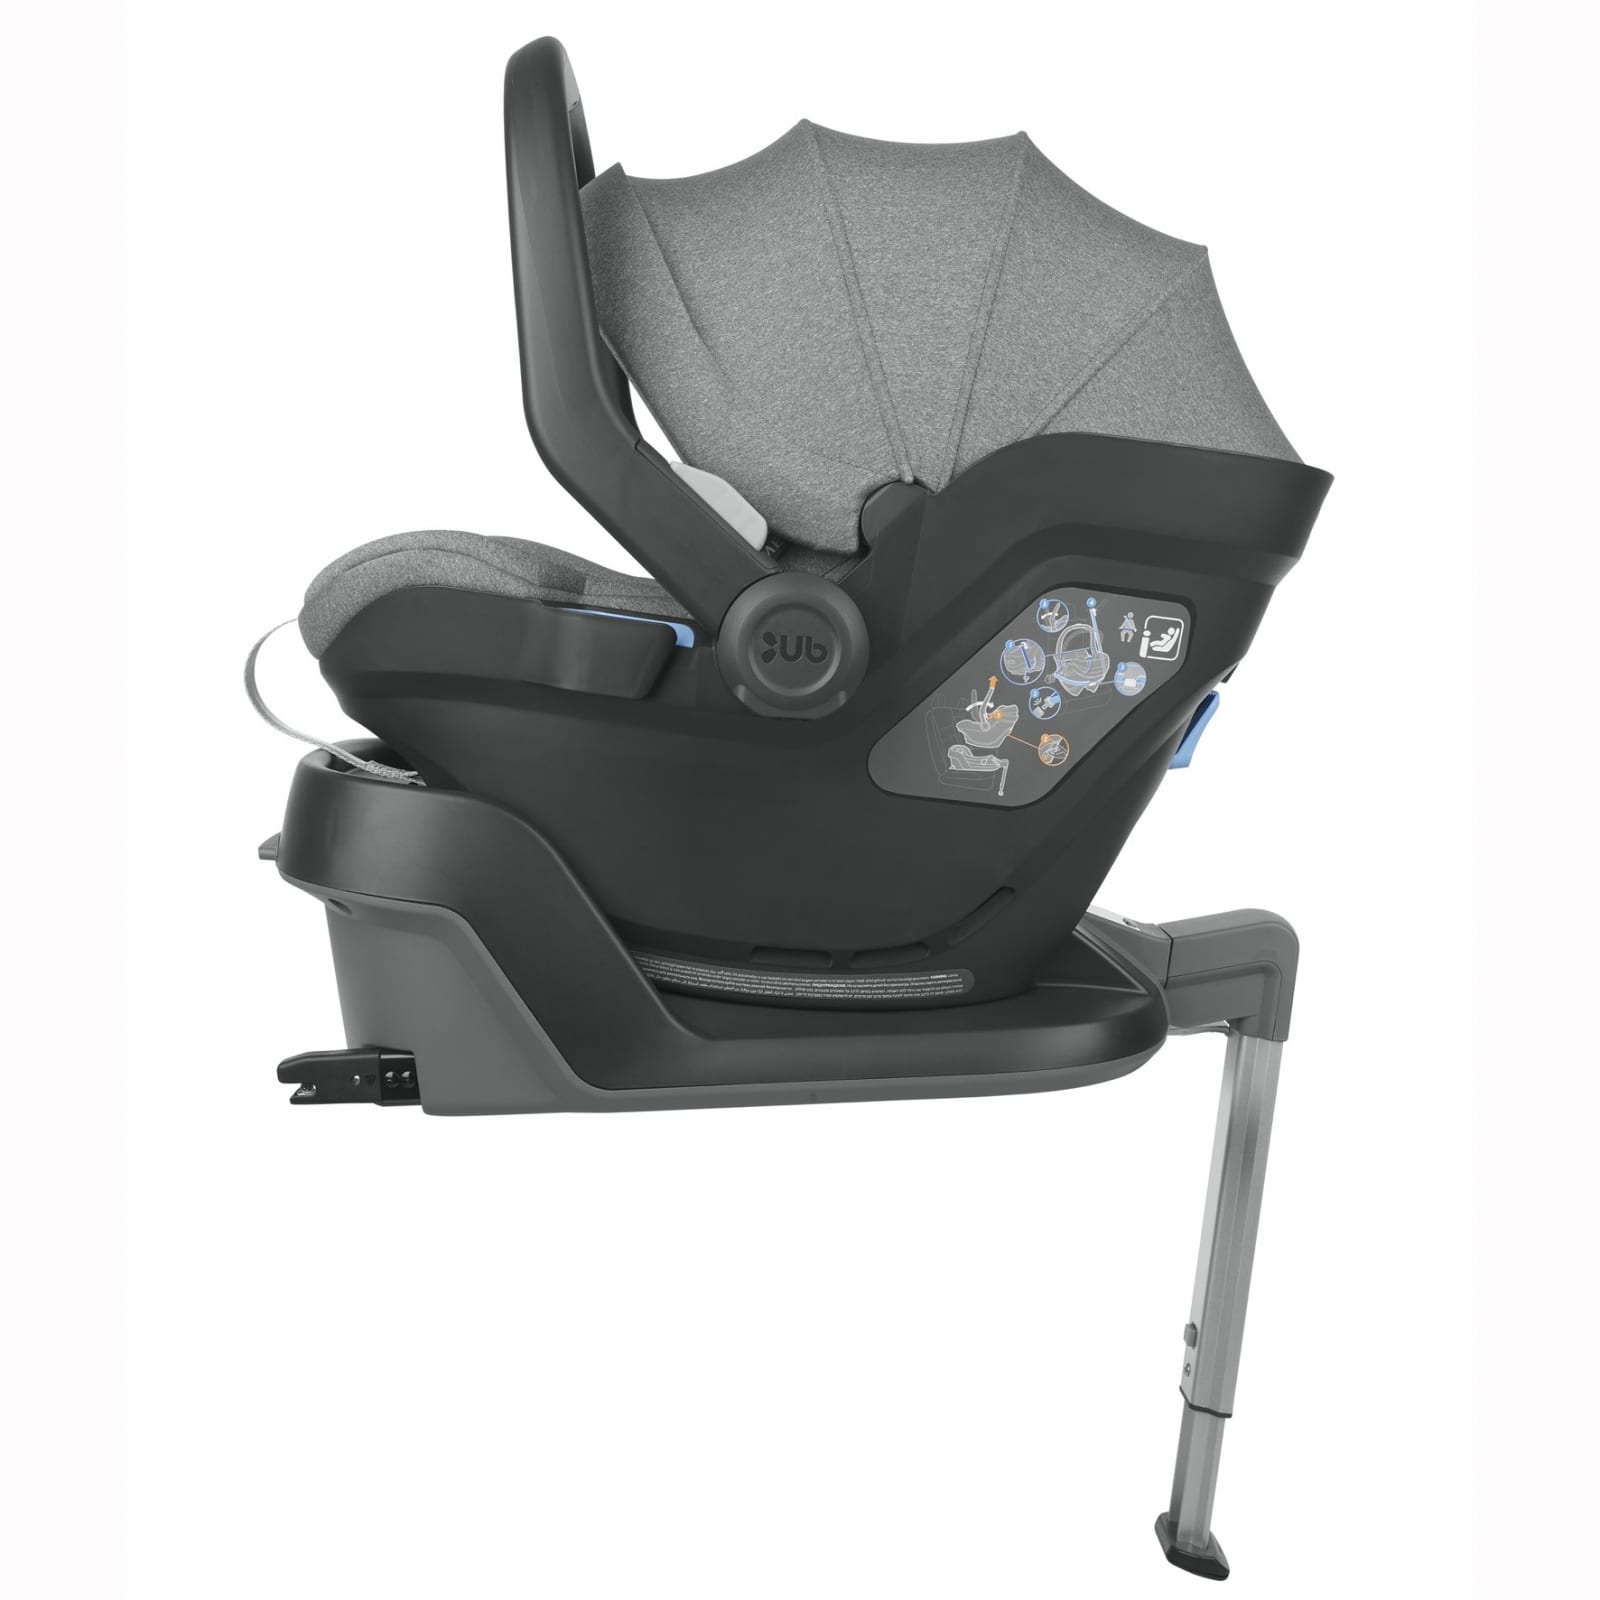 UPPABaby MESA BASE product image